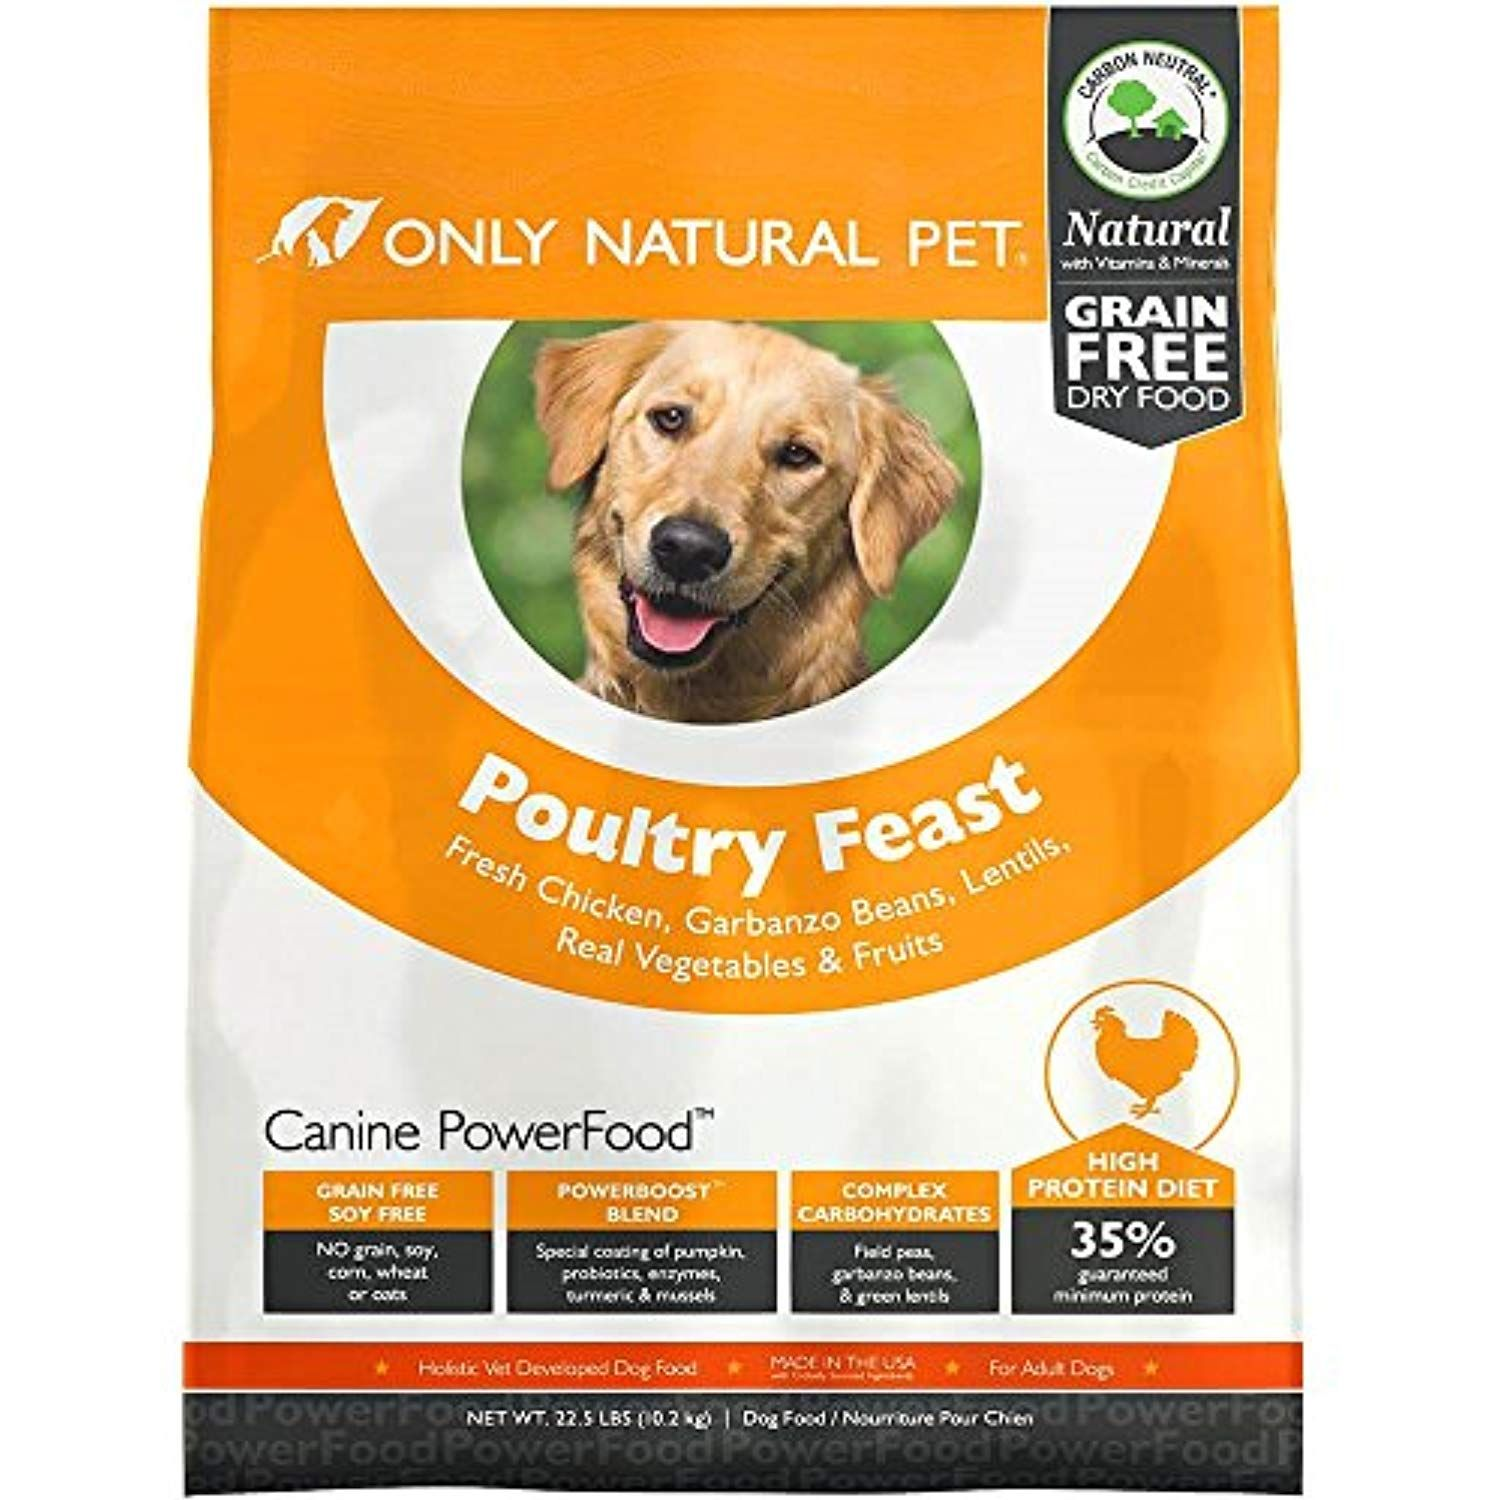 Only Natural Pet Dry Dog Food Canine Powerfood Formula Made In